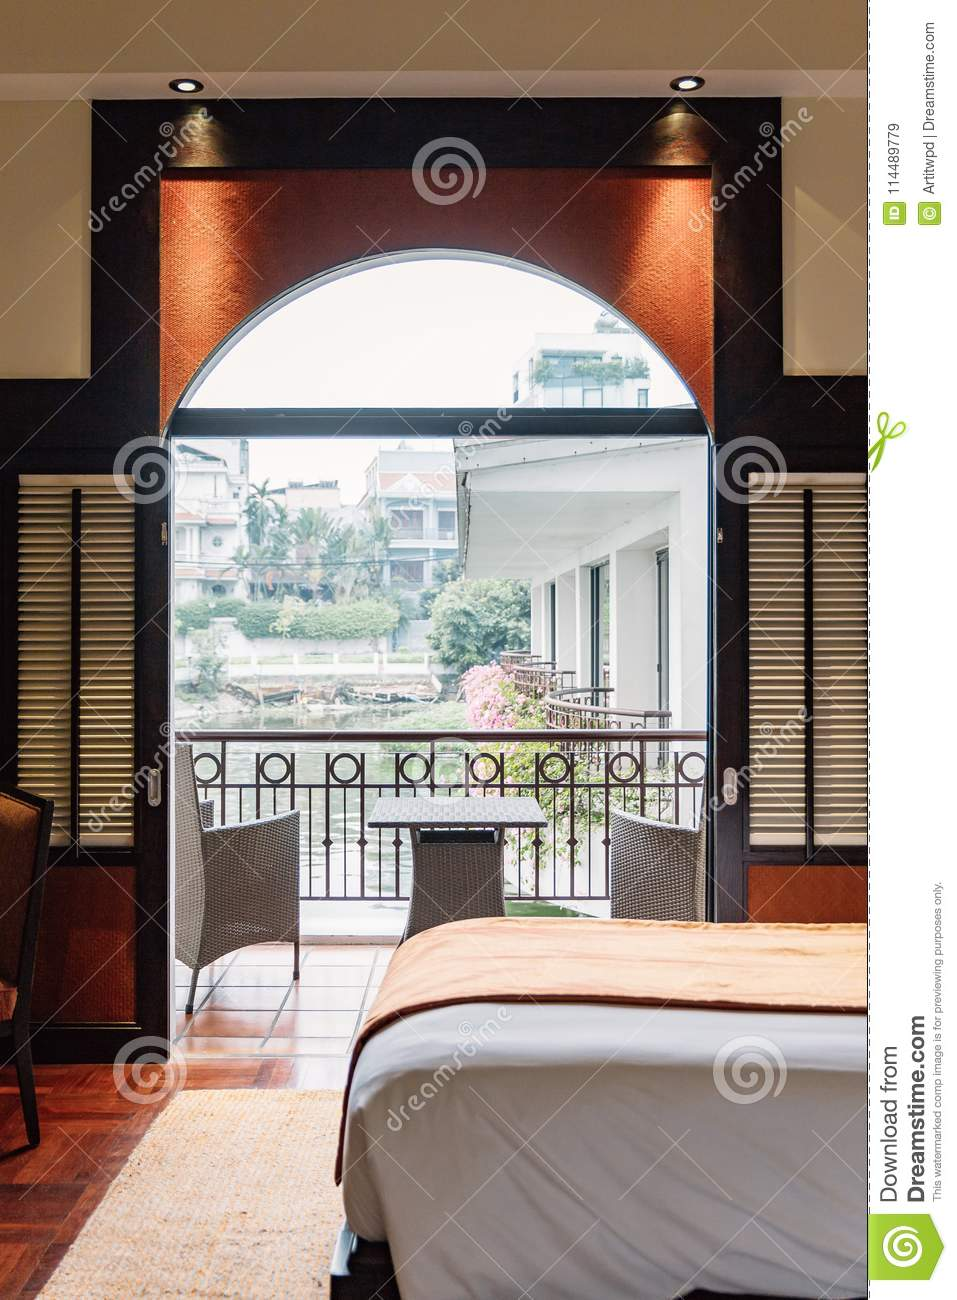 Twin Bed Hotel Room: Twin Bed Hotel Room Can Take View From The Outside With